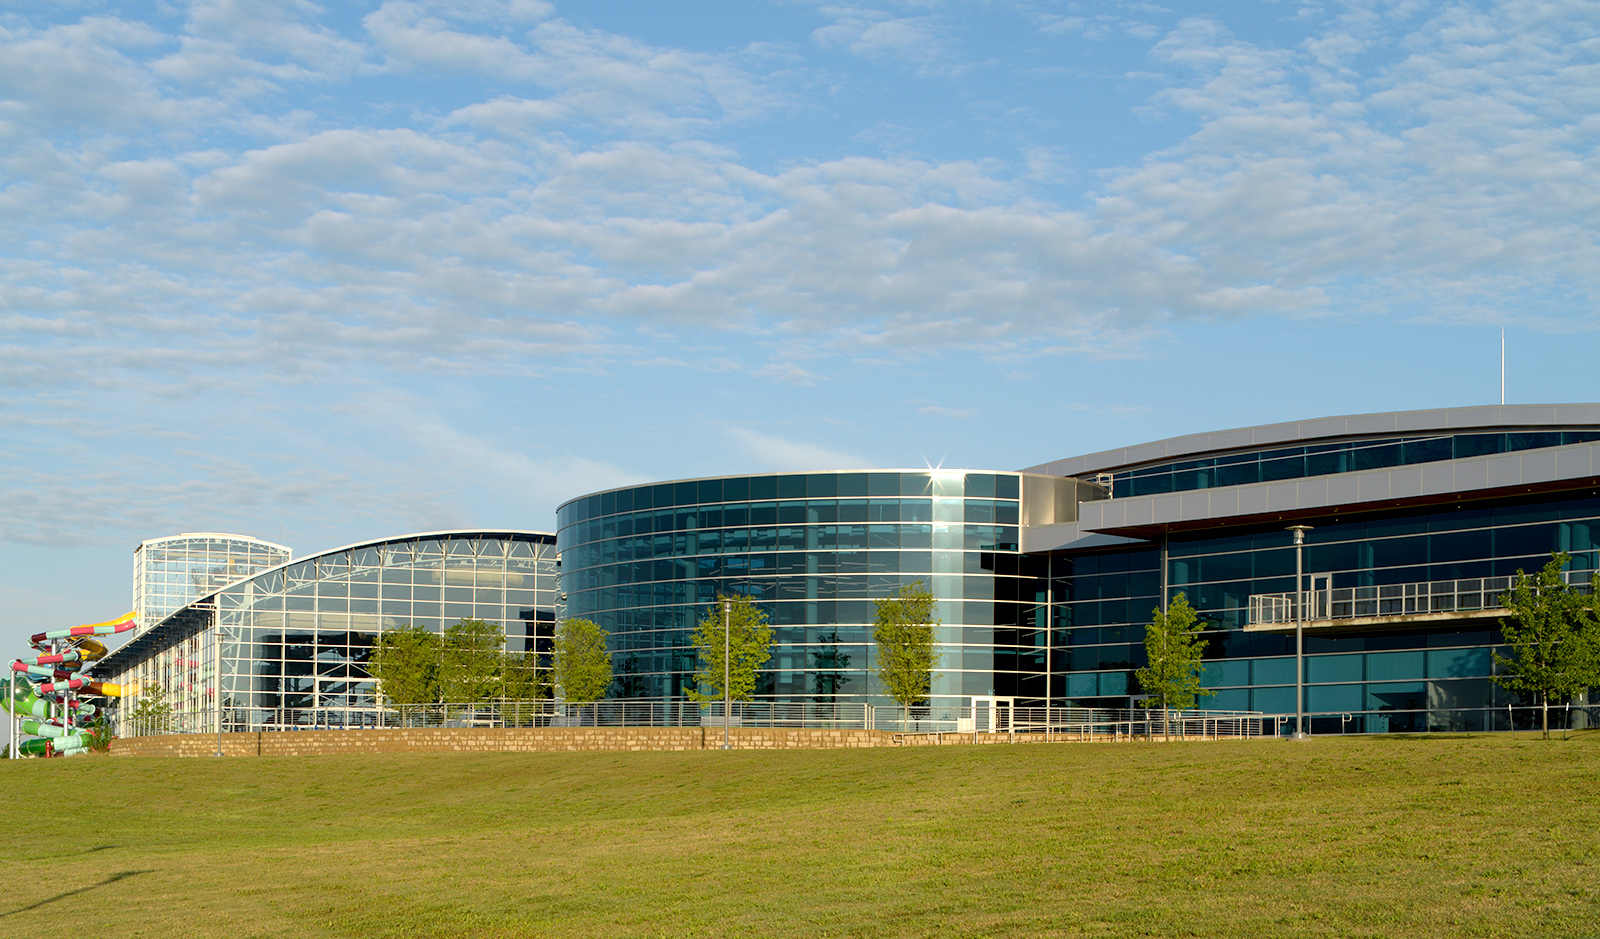 City of Grand Prairie | The EPIC Recreation Center